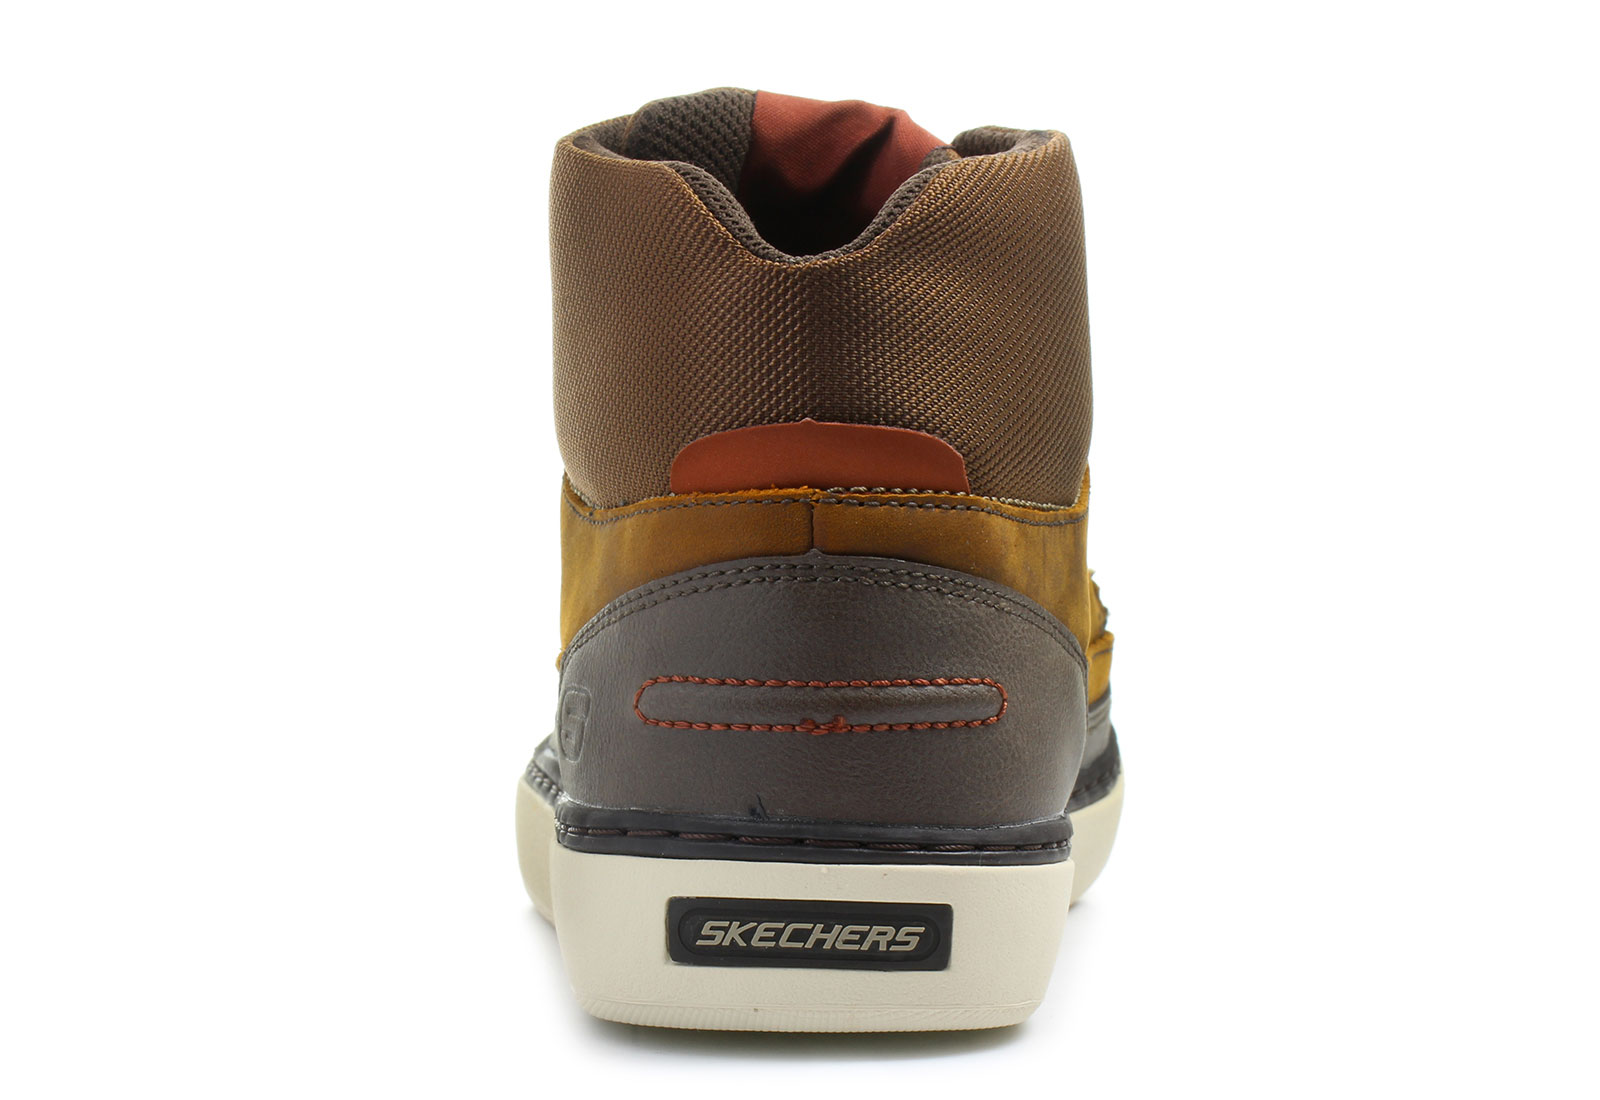 Skechers Shoes Palen 64817 brn Online shop for sneakers, shoes and boots